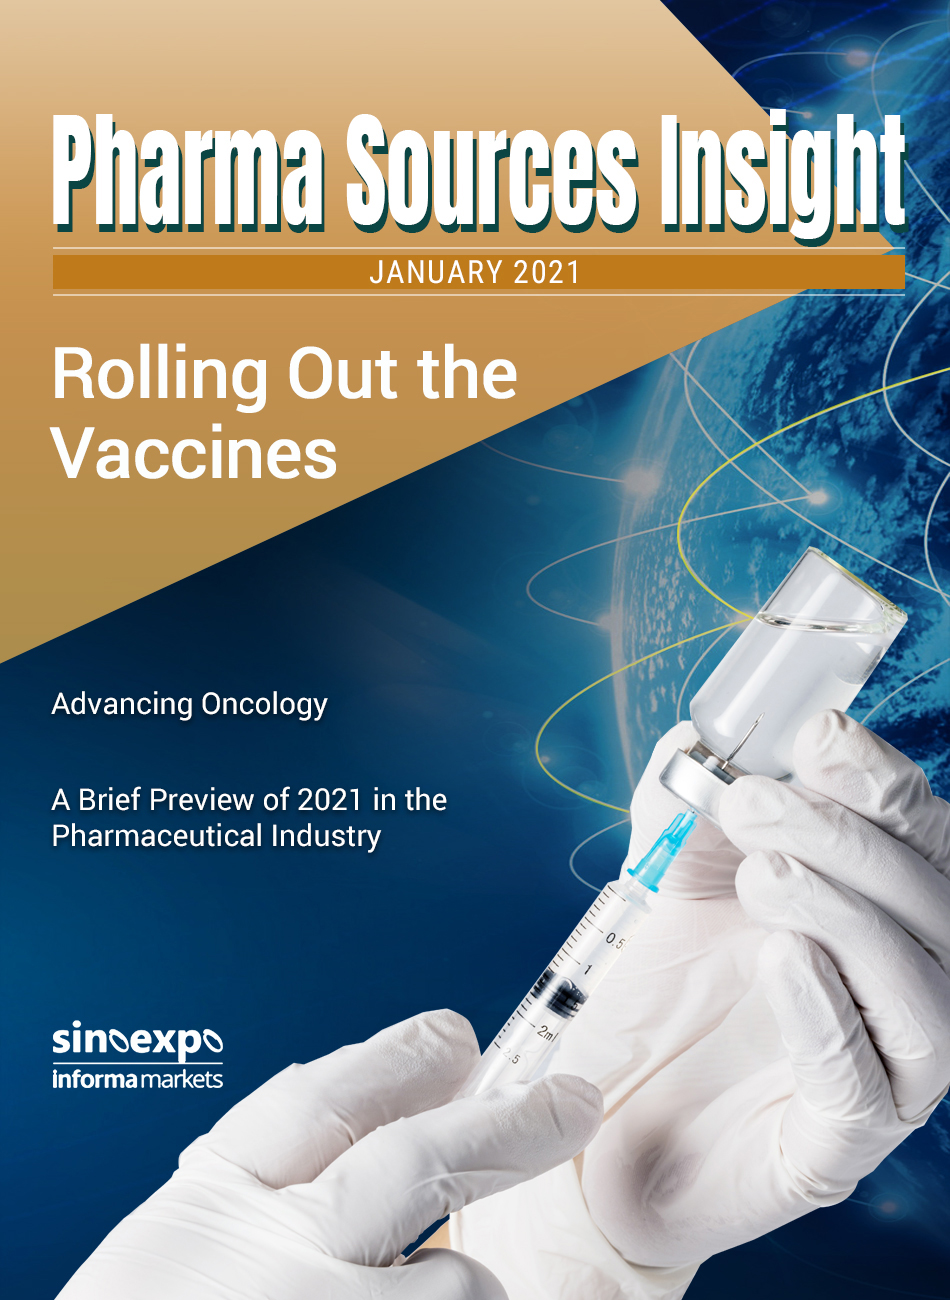 PSI January 2021: Rolling Out the Vaccines